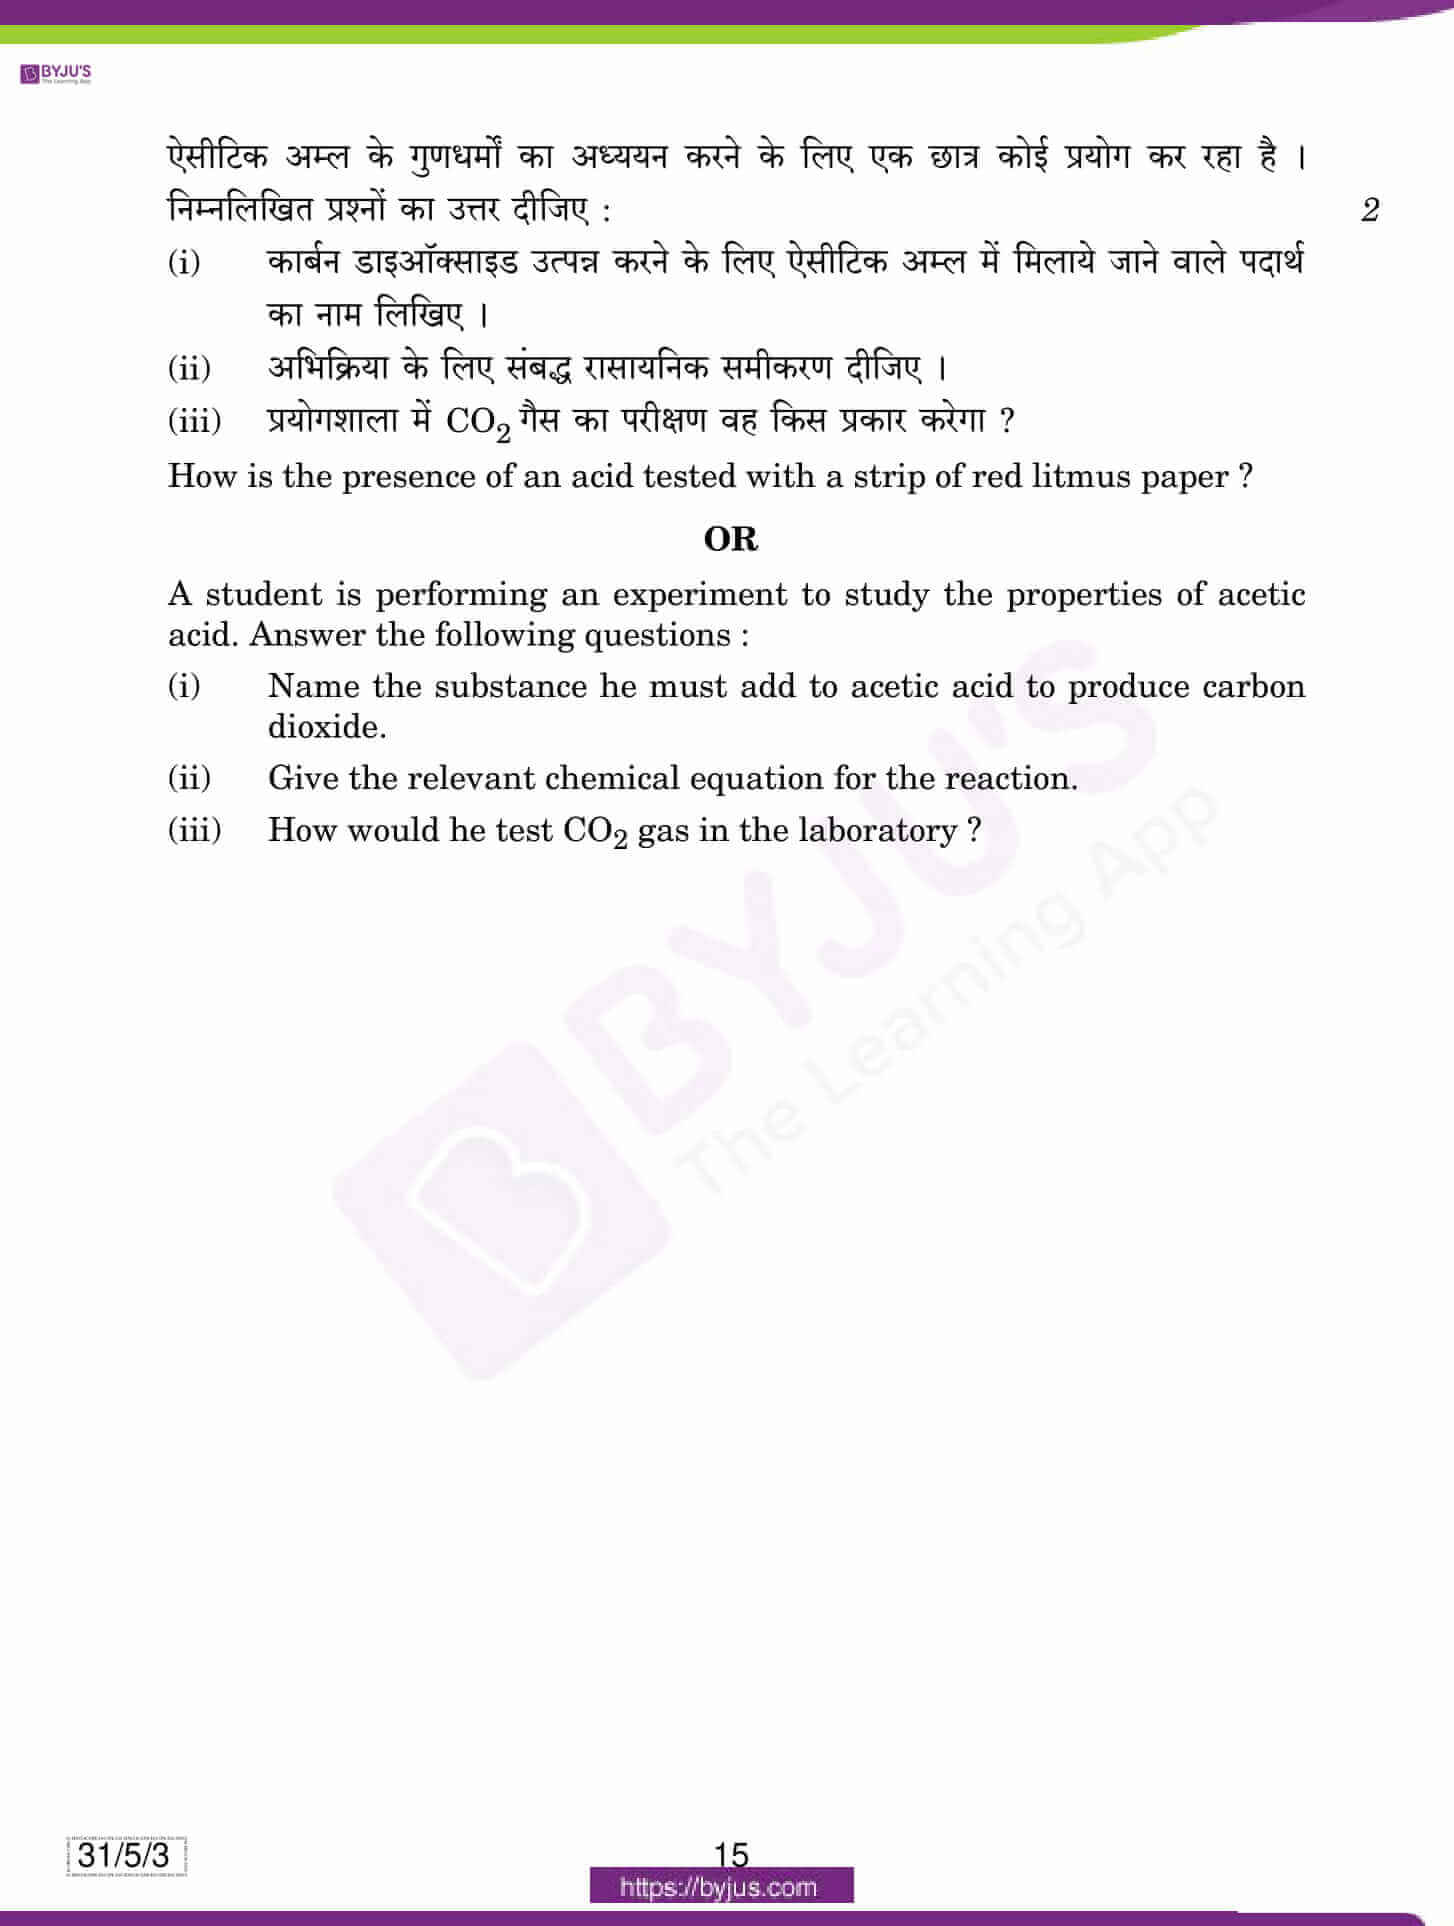 CBSE class 10 Question paper science 2019 set 1